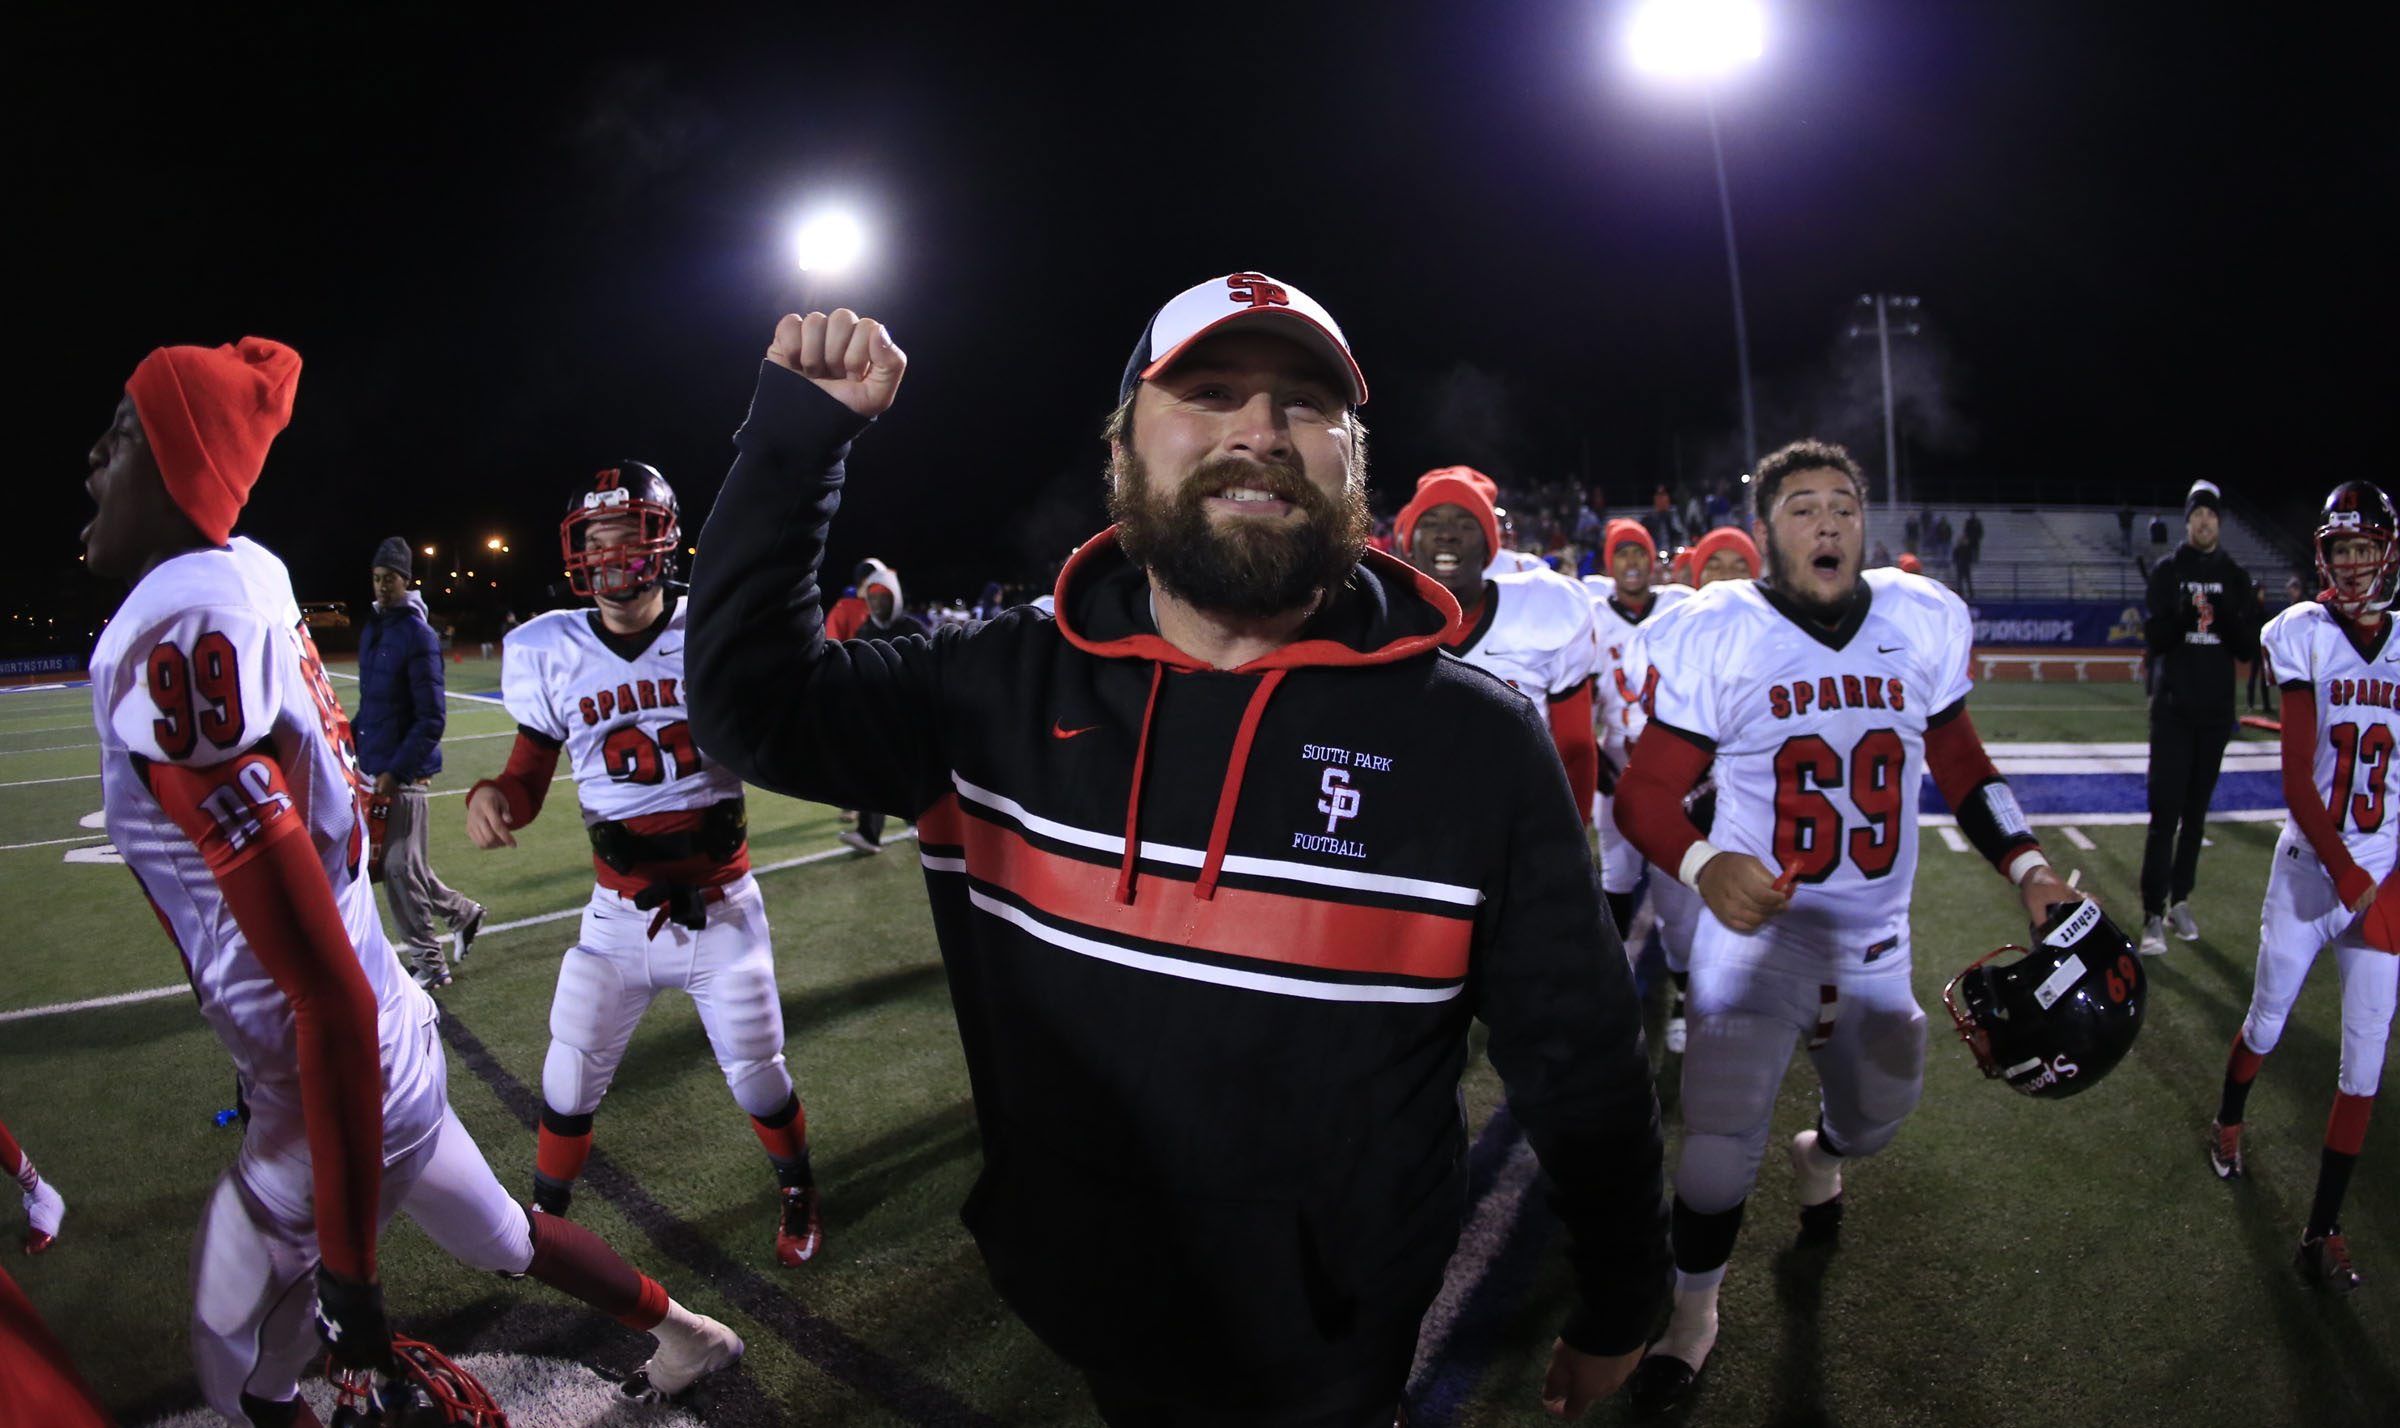 Coach Tim Delaney's South Park Sparks begin their state title defense with a nonleague contest at All High Stadium on Sept. 2 against St. Joe's of the Monsignor Martin Association. (Harry Scull Jr./Buffalo News file photo)